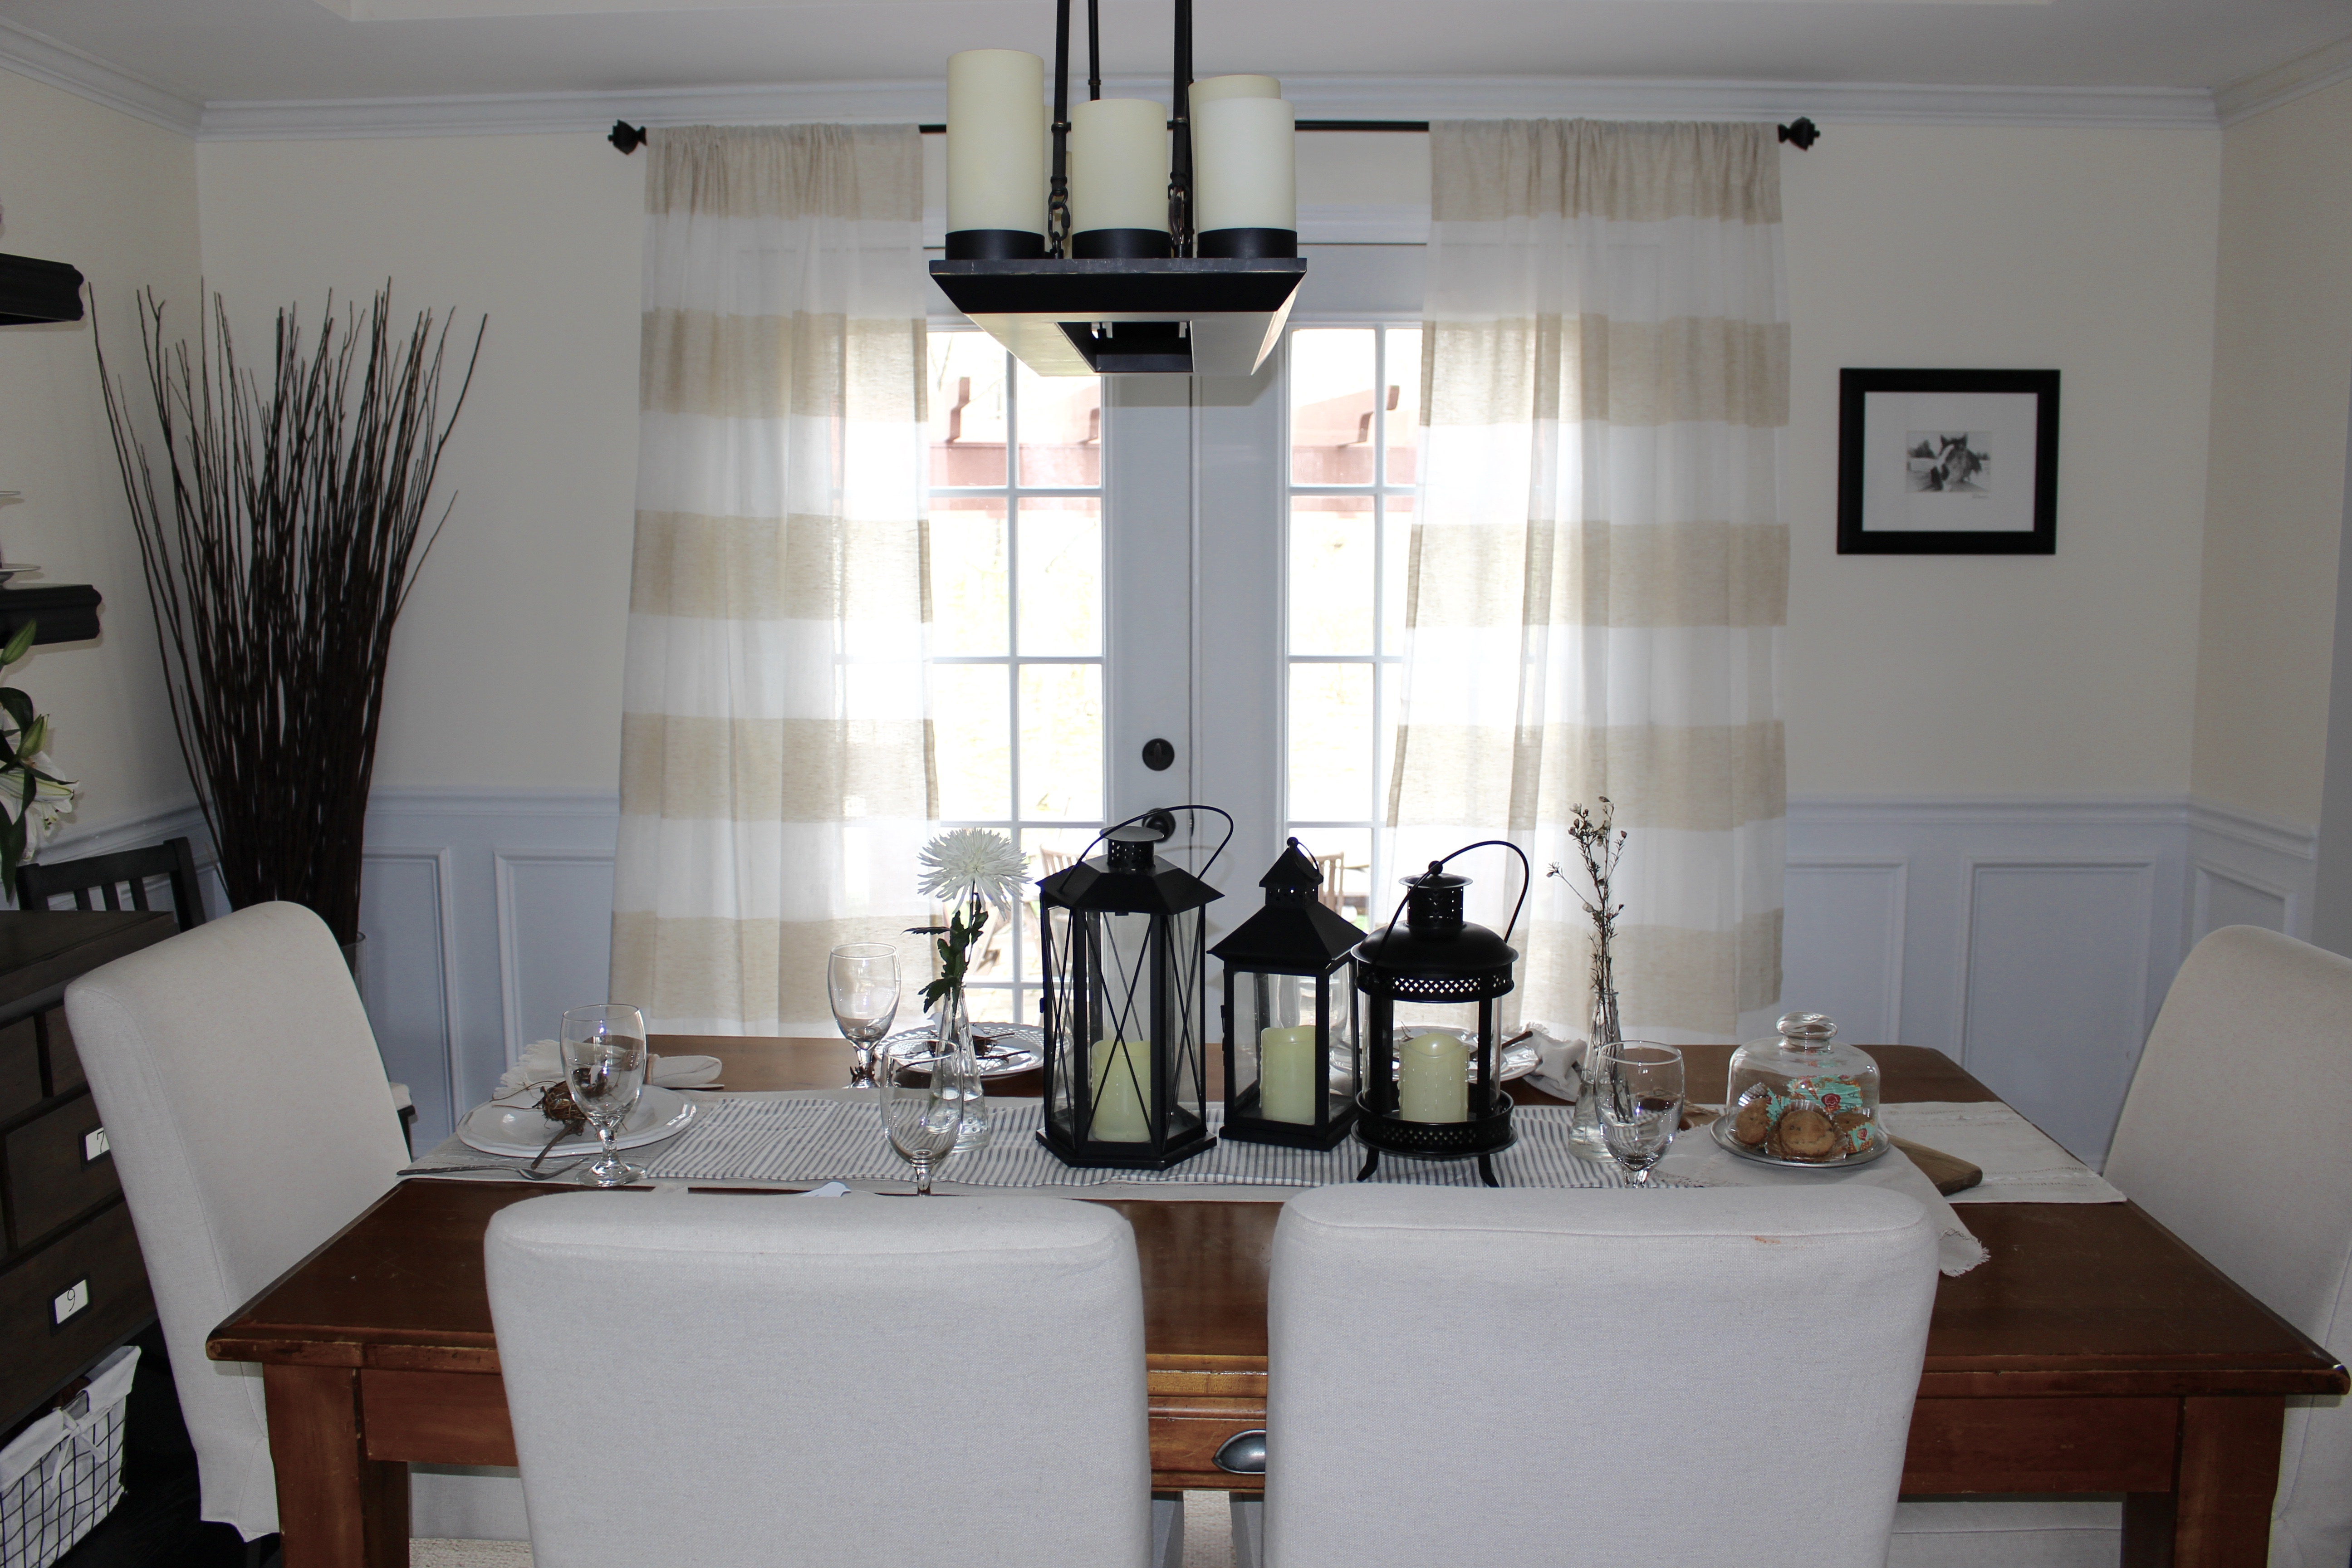 Dining Room for Spring by www.mylifefromhome.com